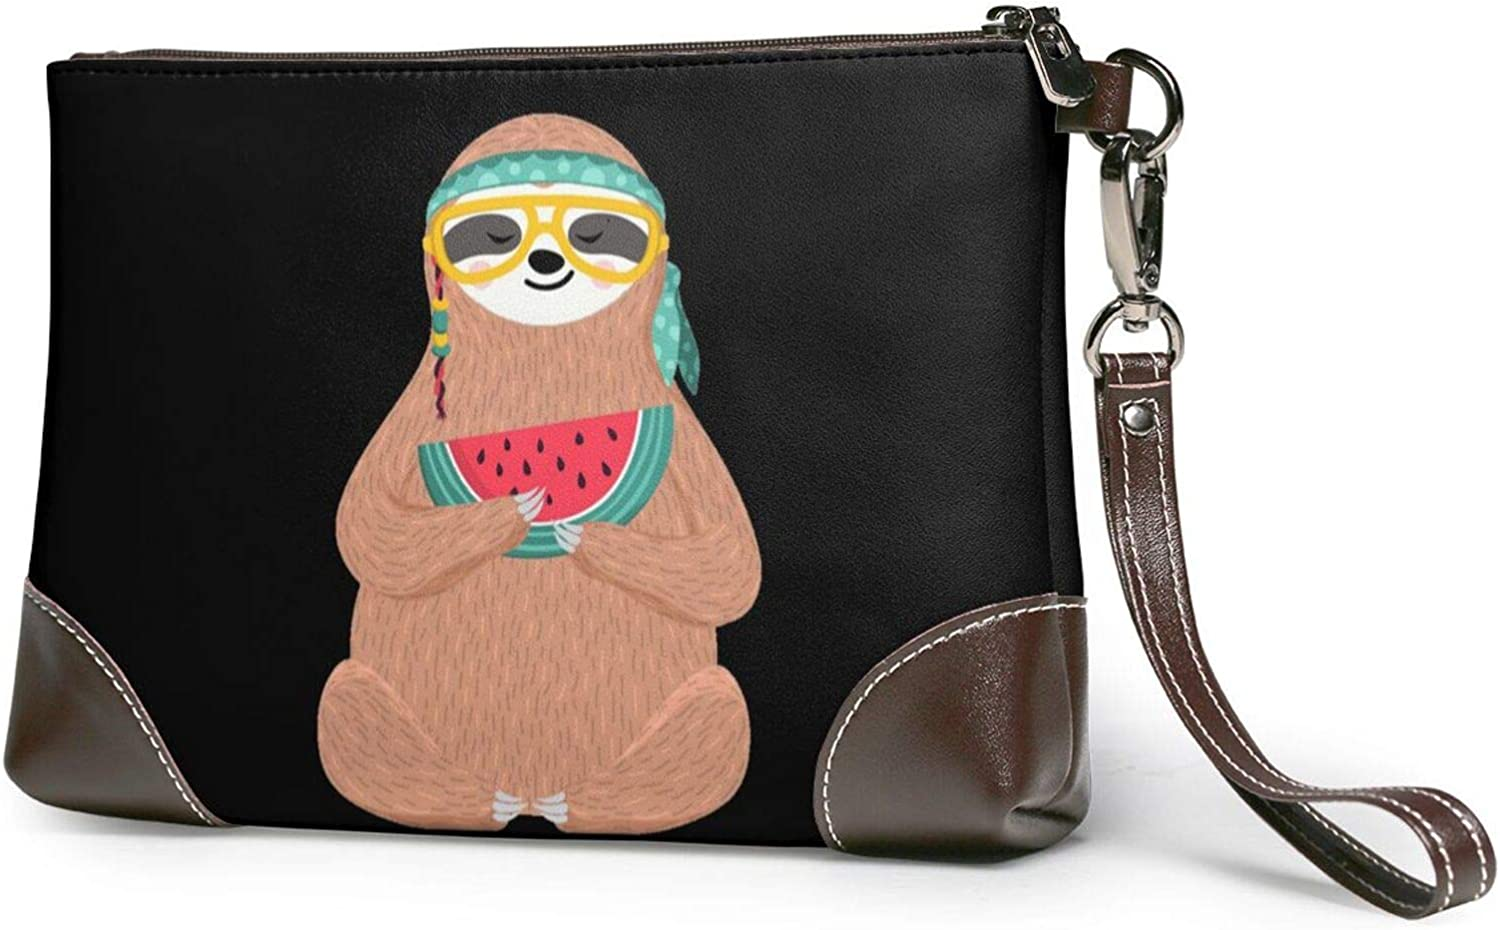 OFFicial shop Cute Slooth 2021 new Clutch Purses Leather Wristlet Wallet